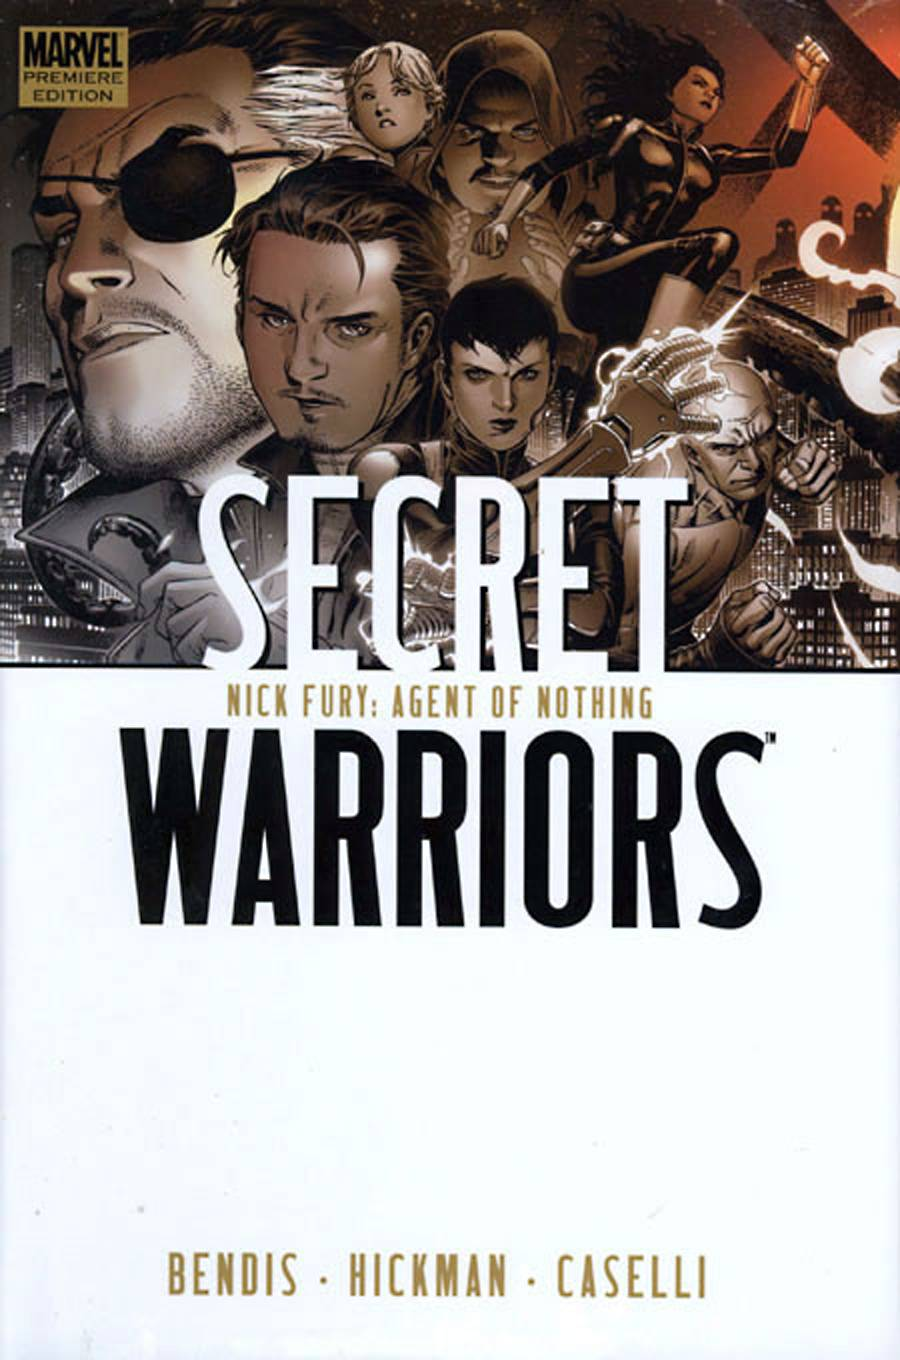 SECRET WARRIORS PREM HC VOL 01 NICK FURY AGENT OF NOTHING